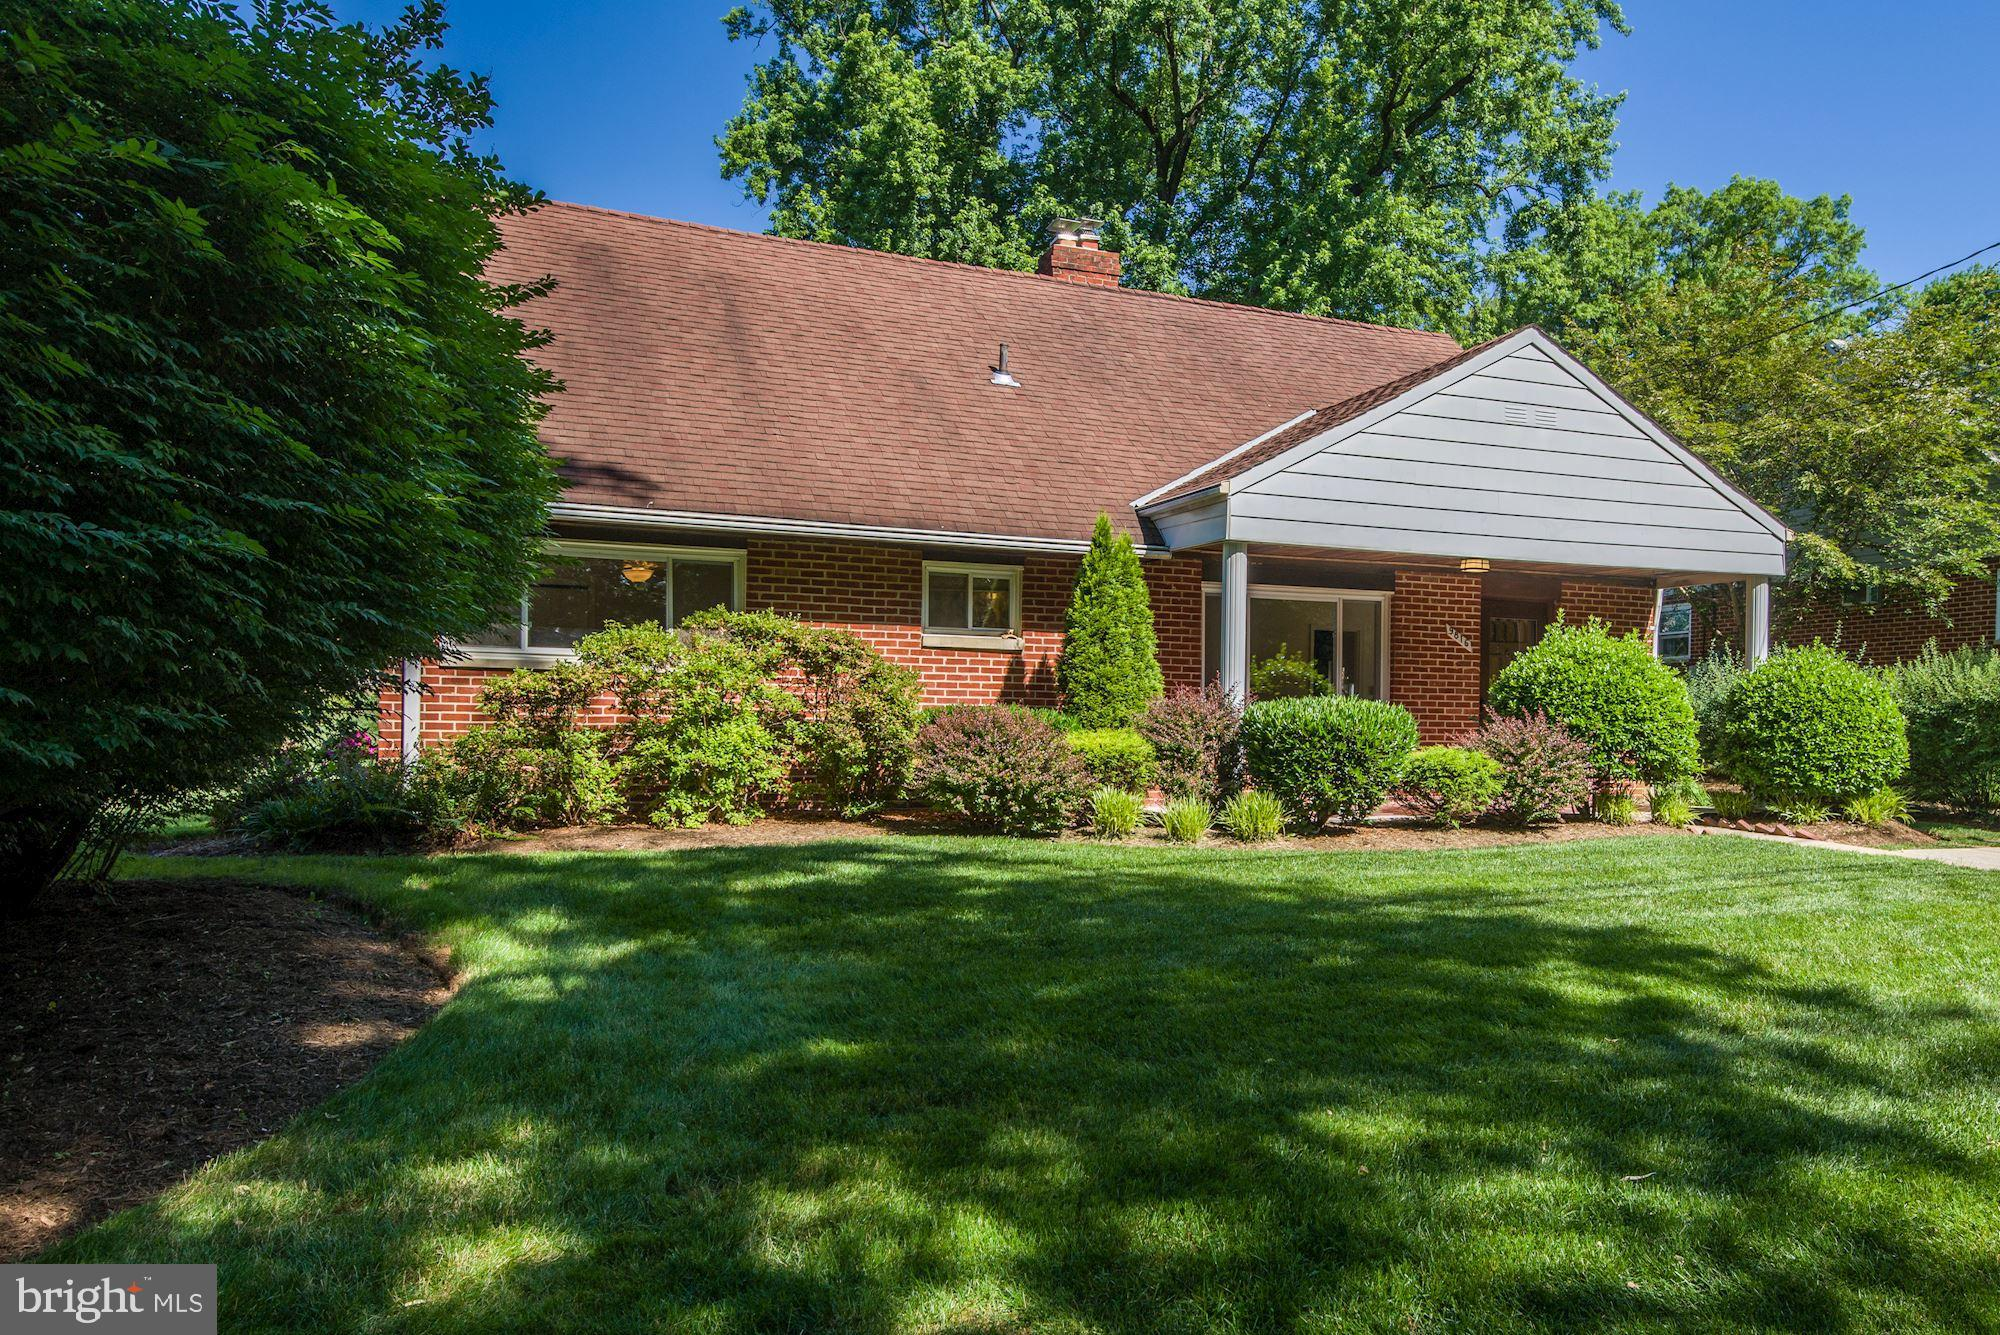 9816 COTTRELL TERRACE, SILVER SPRING, MD 20903